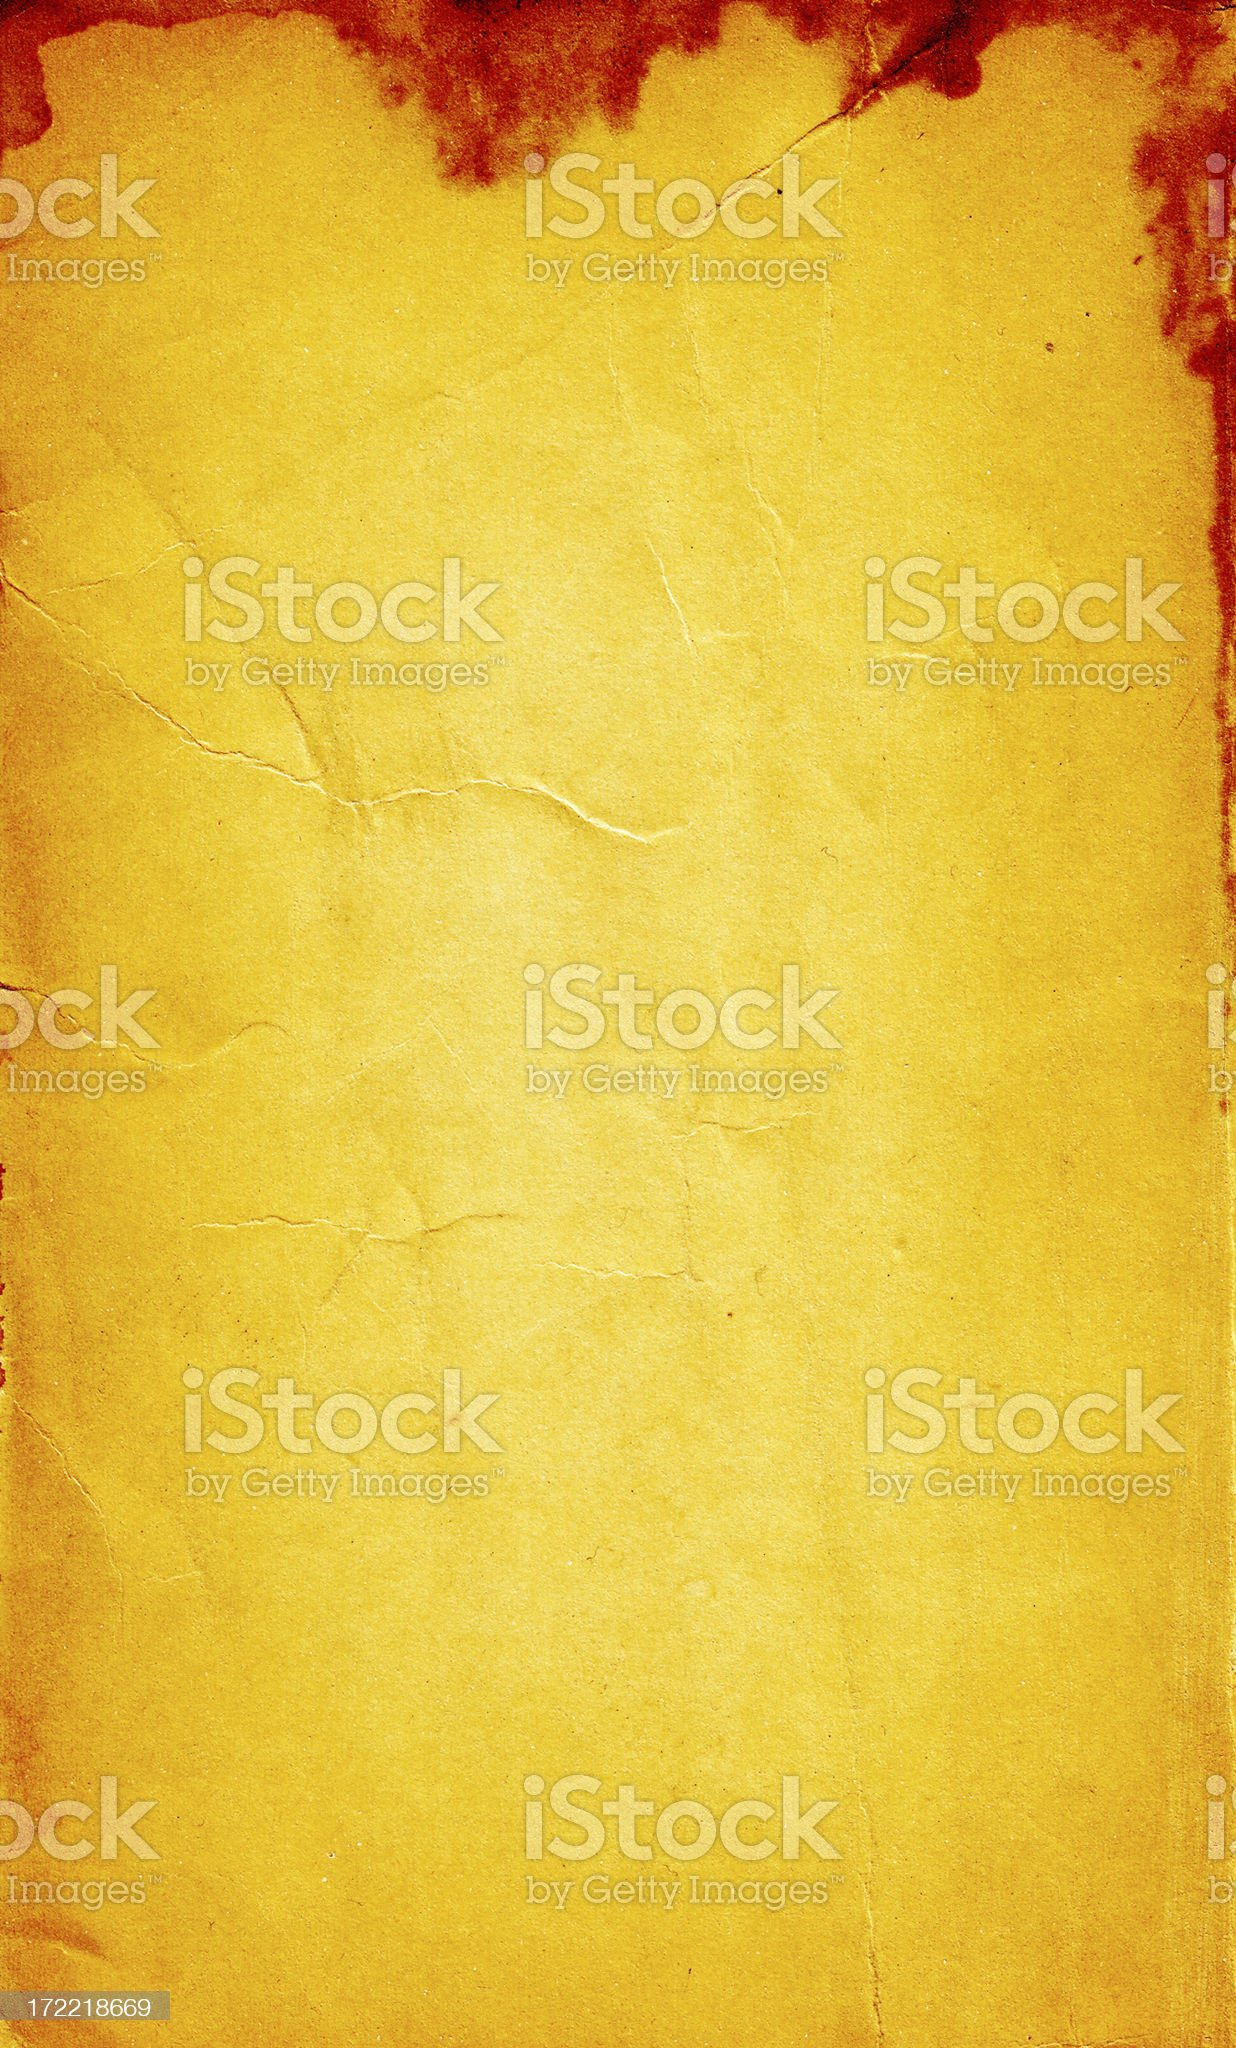 Blank Paper Background Image Layer  Empty Page royalty-free stock photo